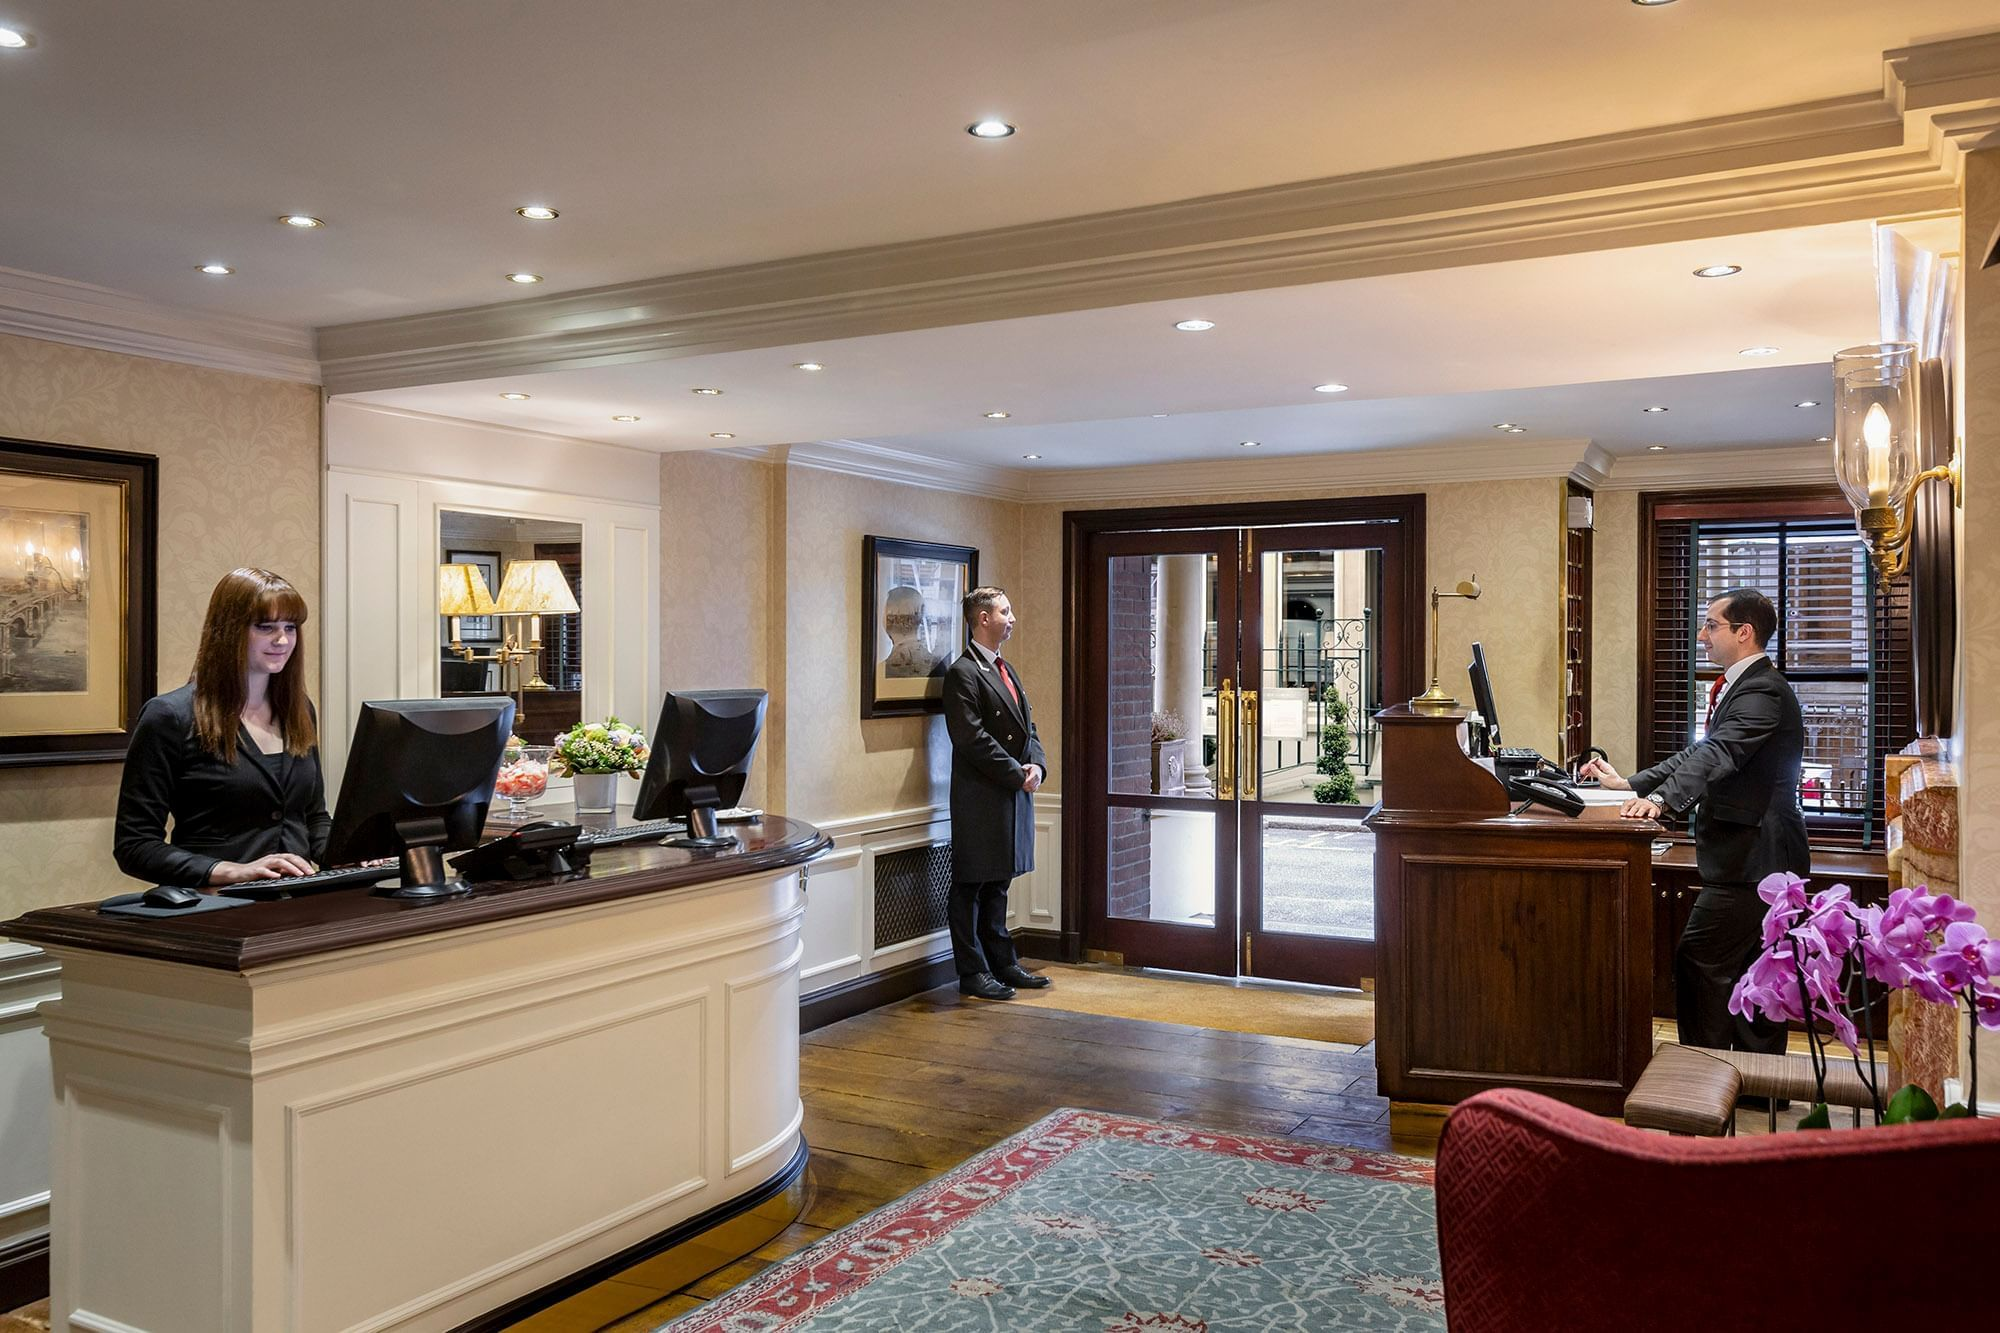 The Capital Hotel Reception and Concierge Desk